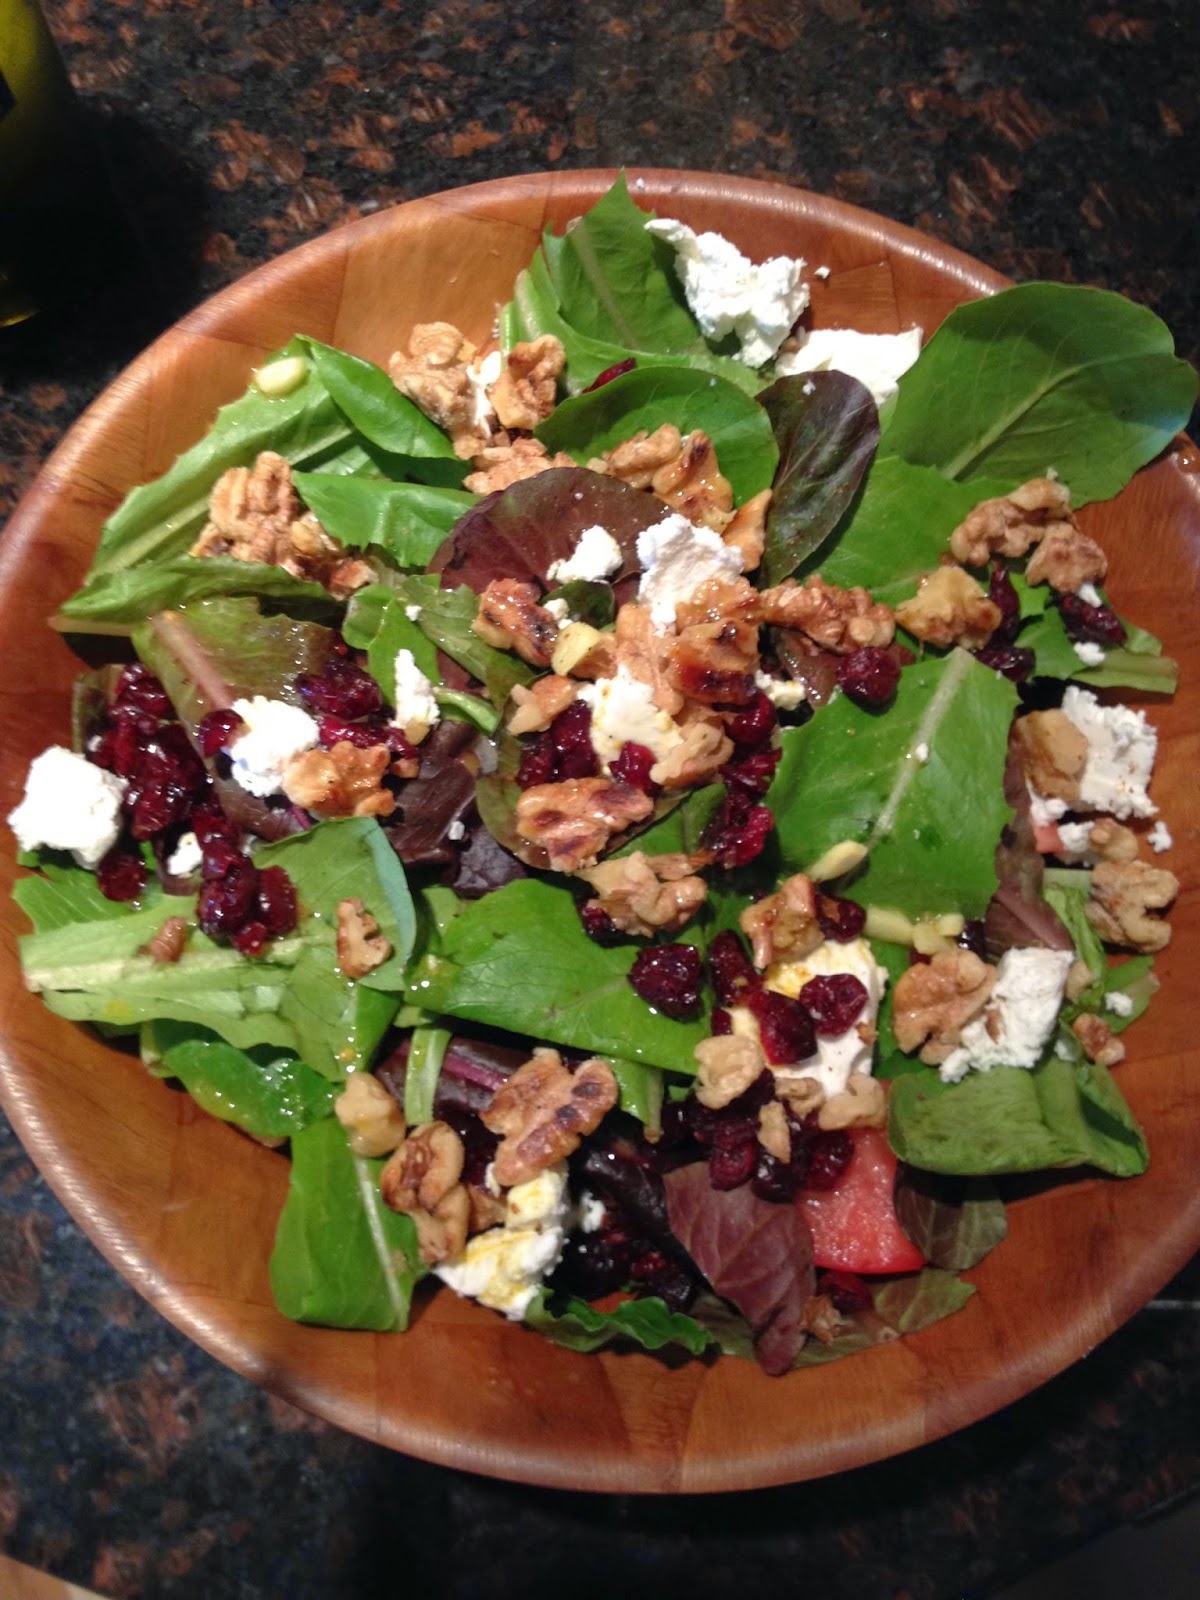 Spinach salad with cranberries, walnuts & goat cheese